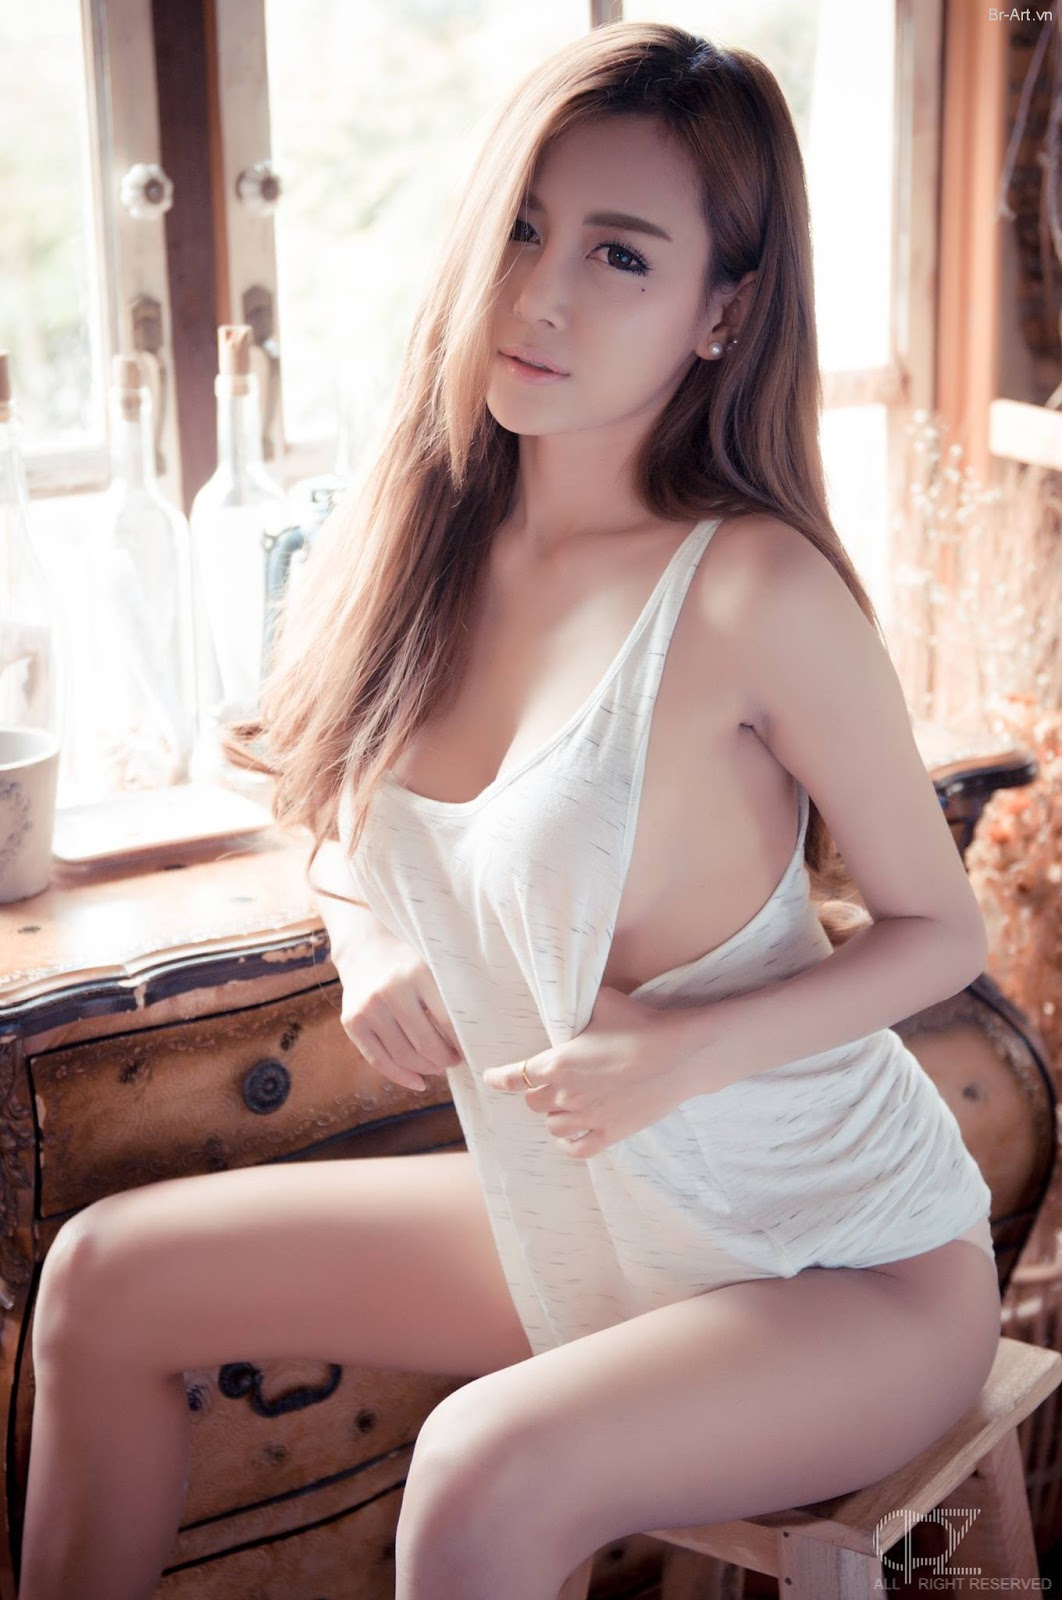 celine farach hung ho khoe vong 1 goi cam nhat nuoc my (3)